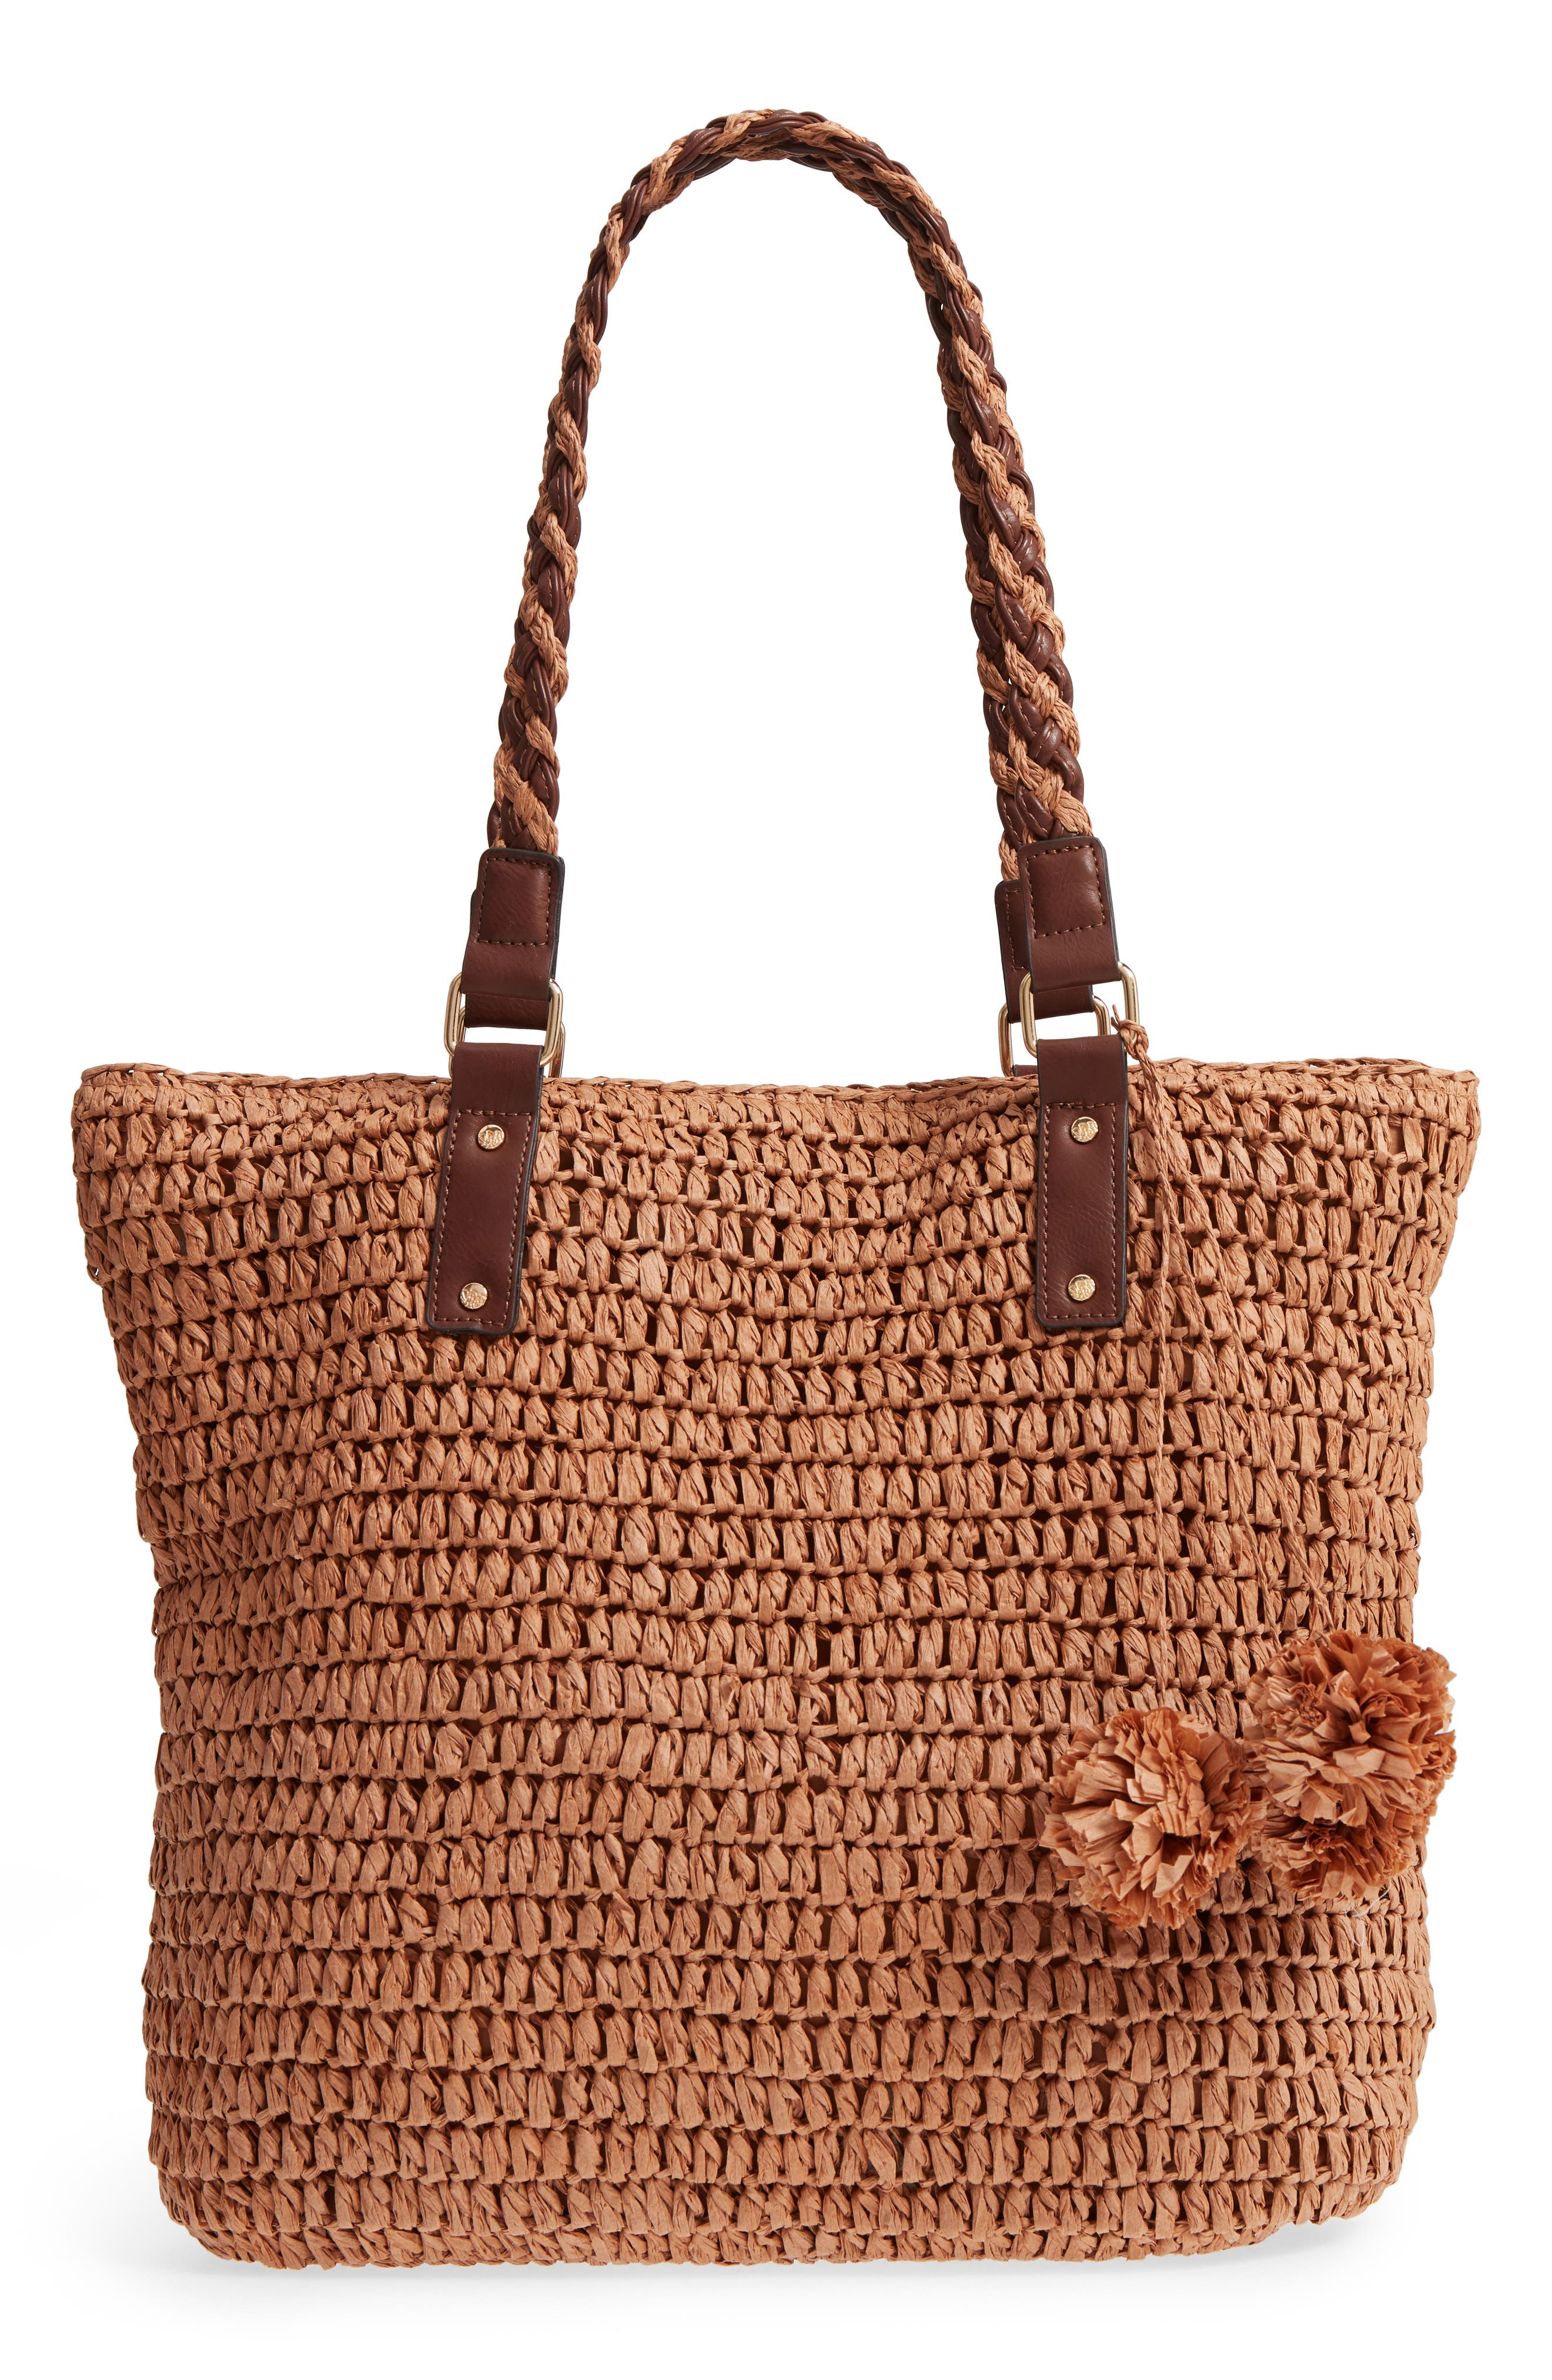 Bahama Mama Straw Tote,                             Main thumbnail 1, color,                             207